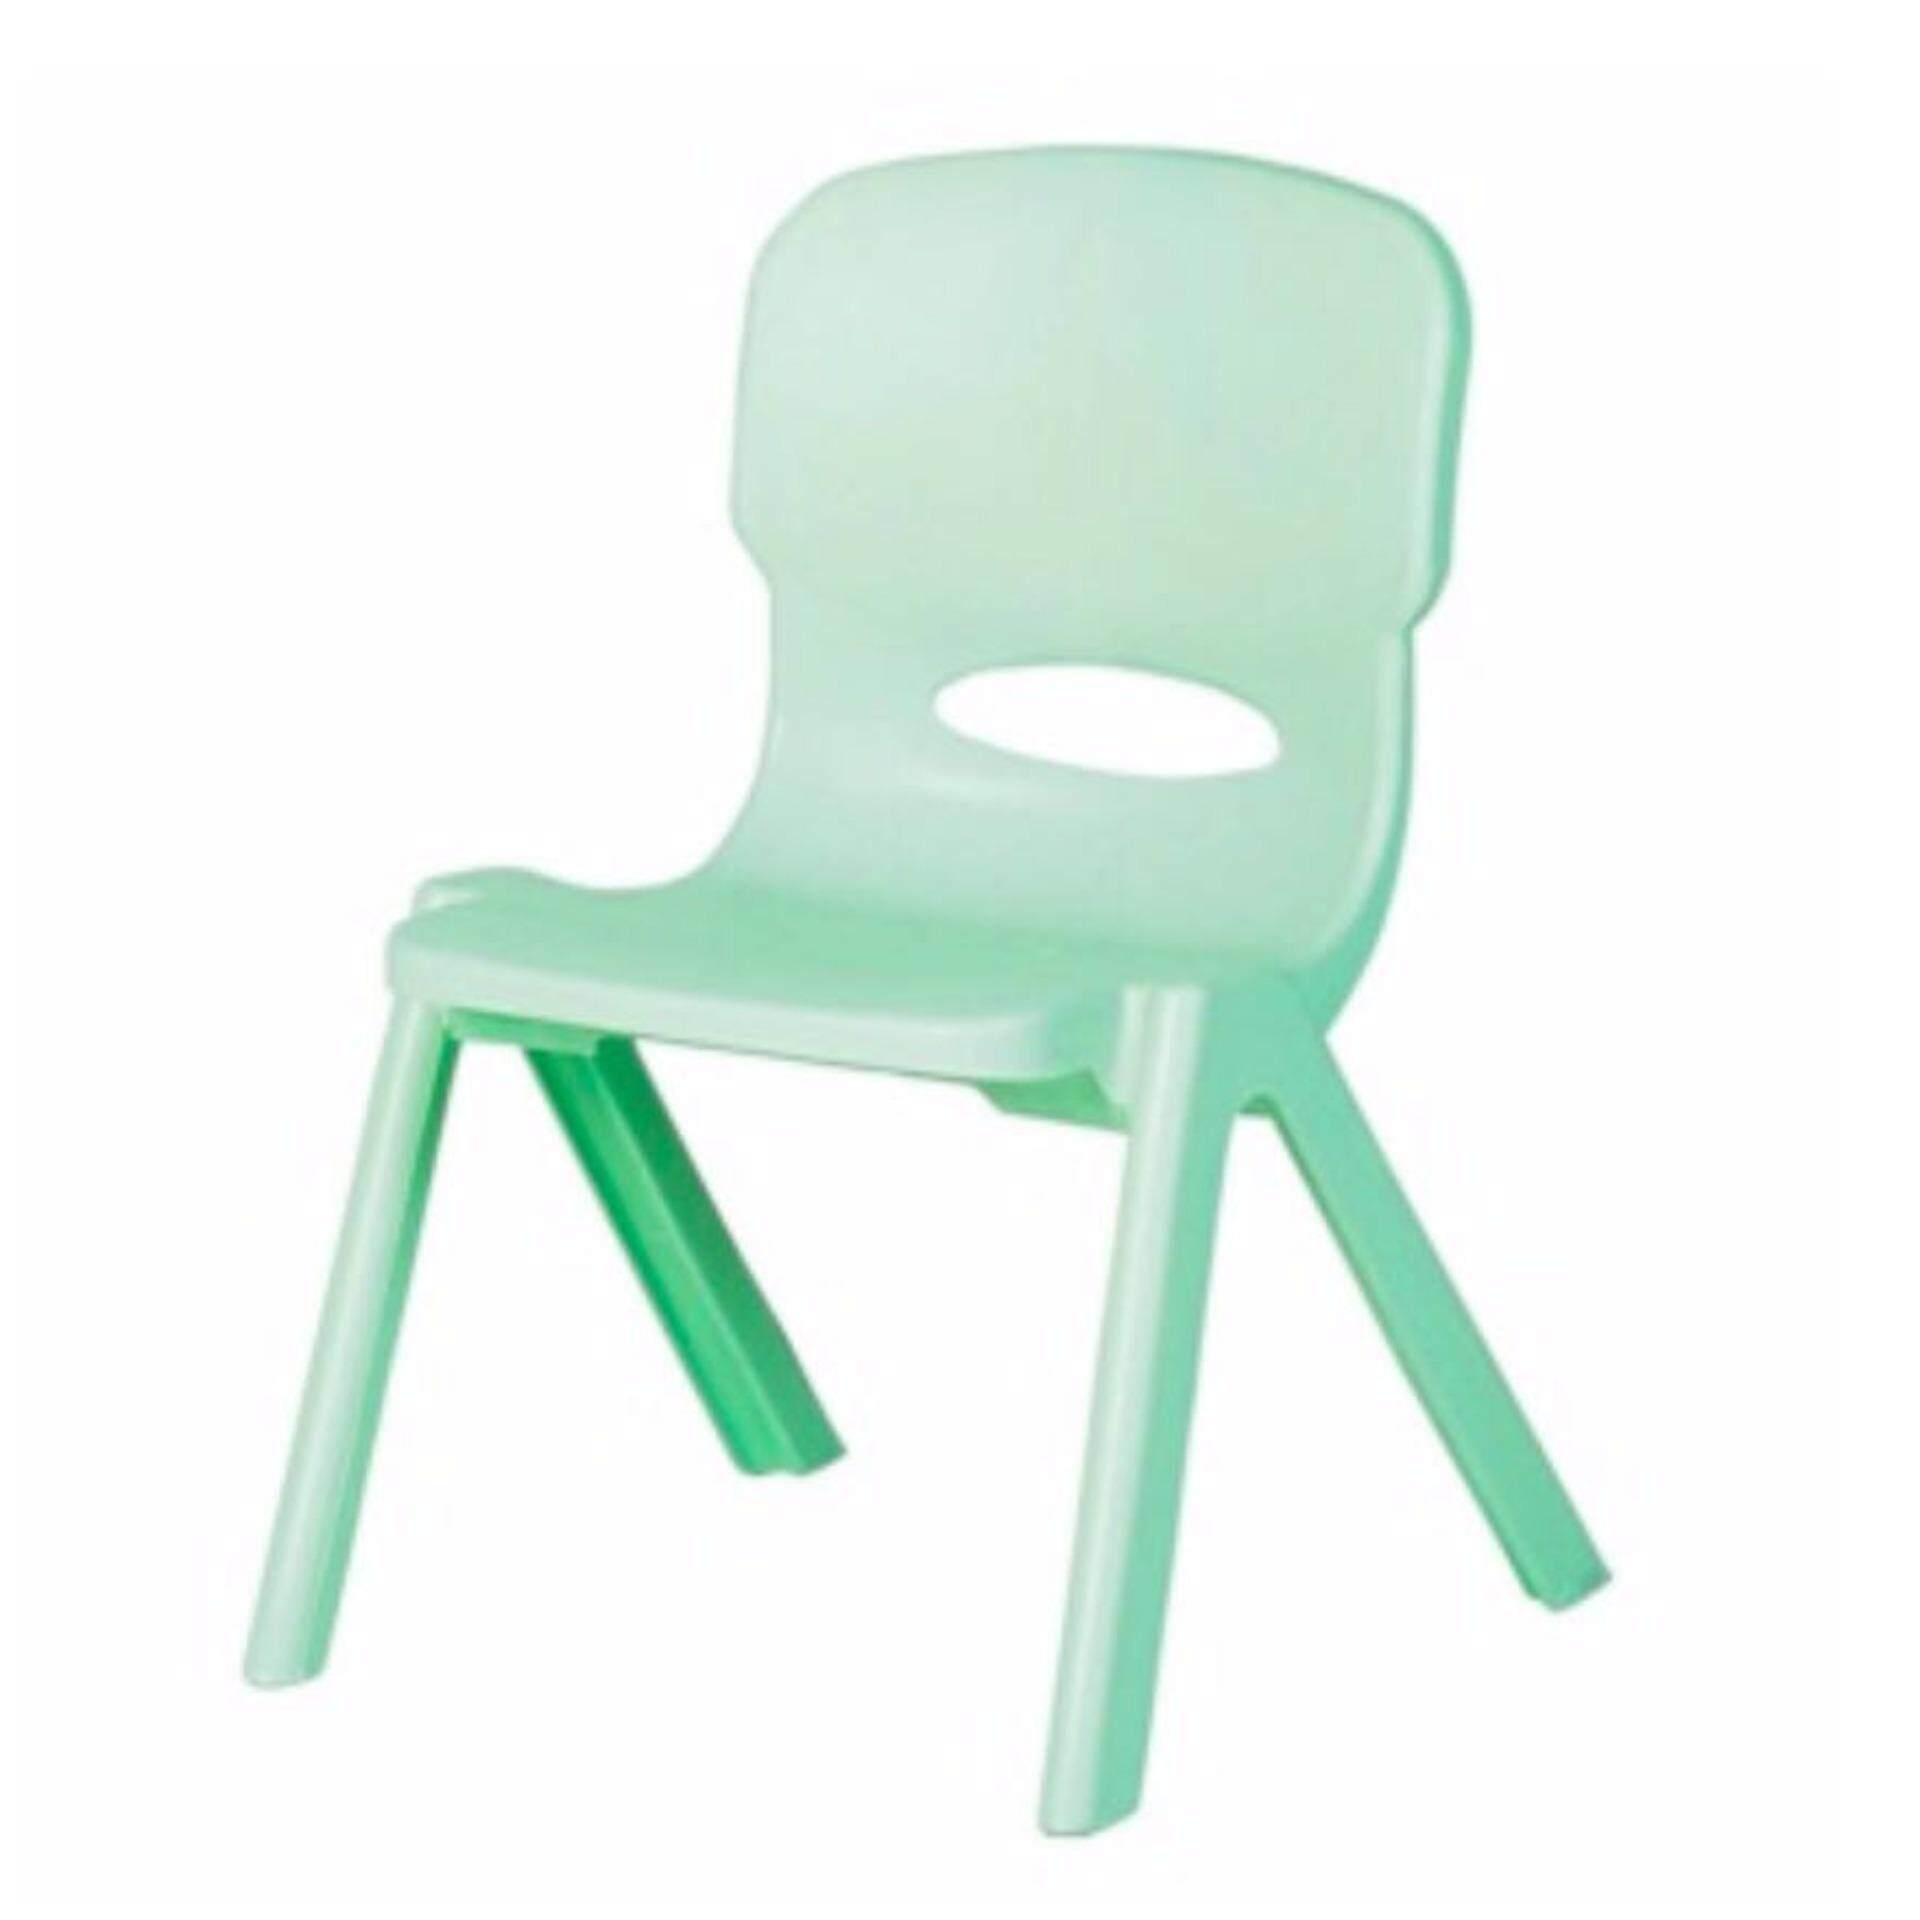 Childs Plastic Table And Chairs Images Childrens Wooden